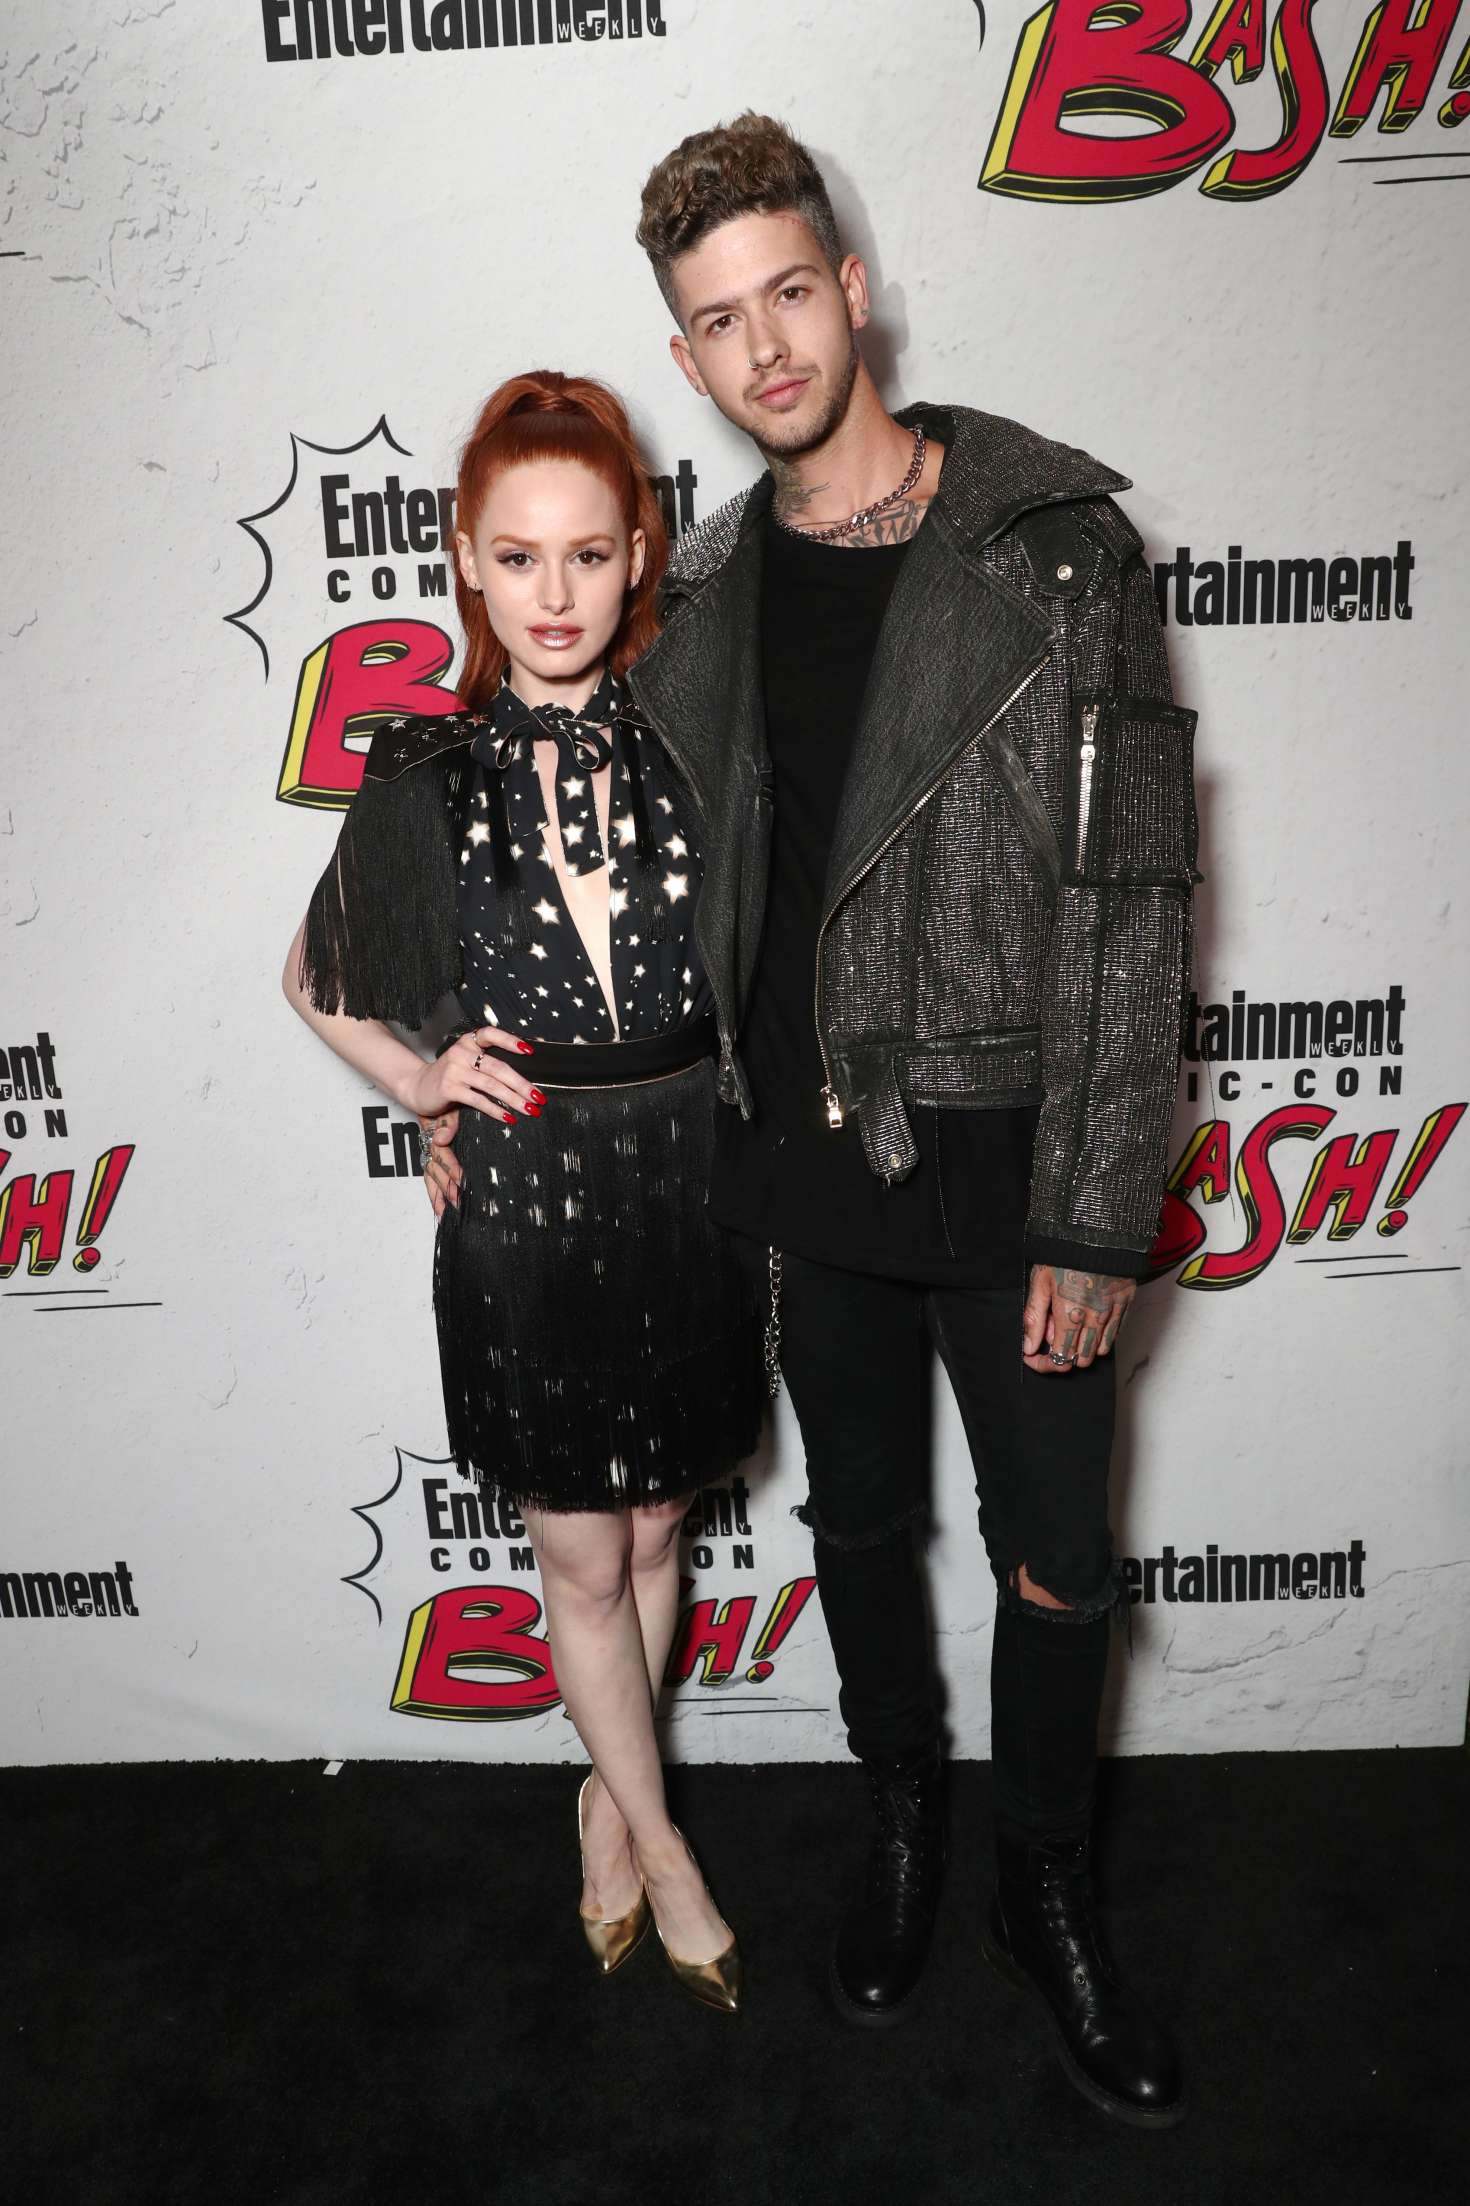 Madelaine Petsch 2017 : Madelaine Petsch: Entertainment Weekly Party at 2017 Comic-Con -06